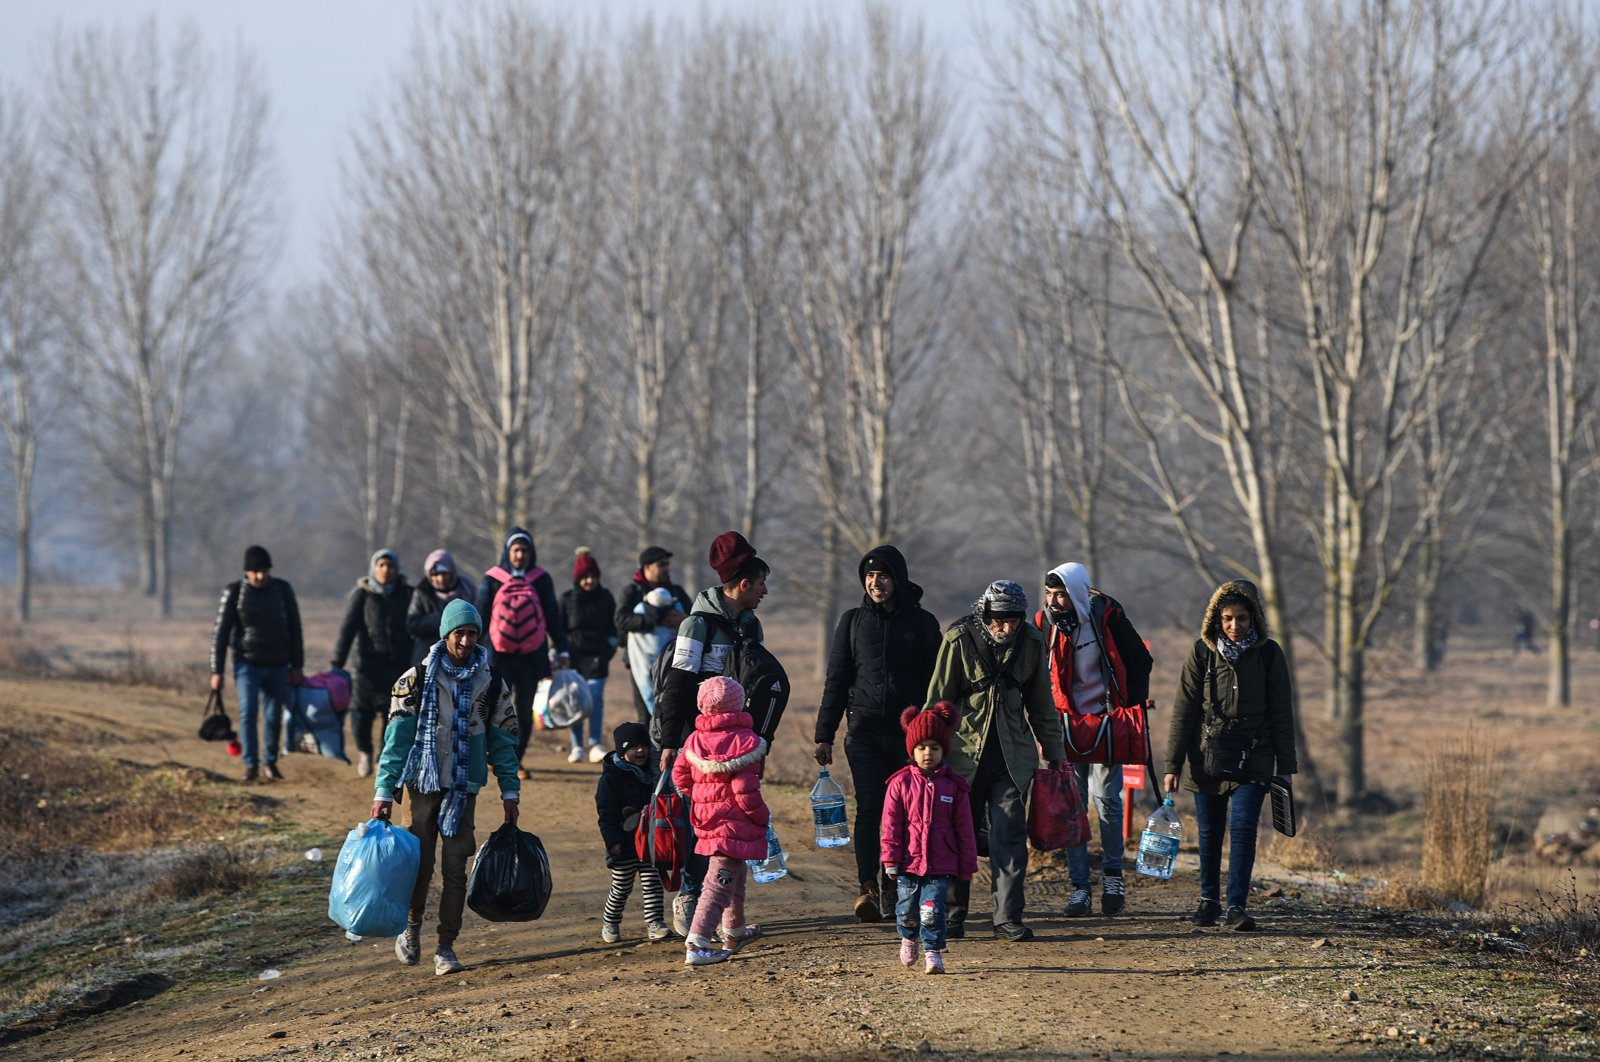 Migrants walk toward Maritsa river, near Edirne, to take a boat to attempt to enter Greece by crossing the river, northwestern Turkey, March 1, 2020. (AFP Photo)